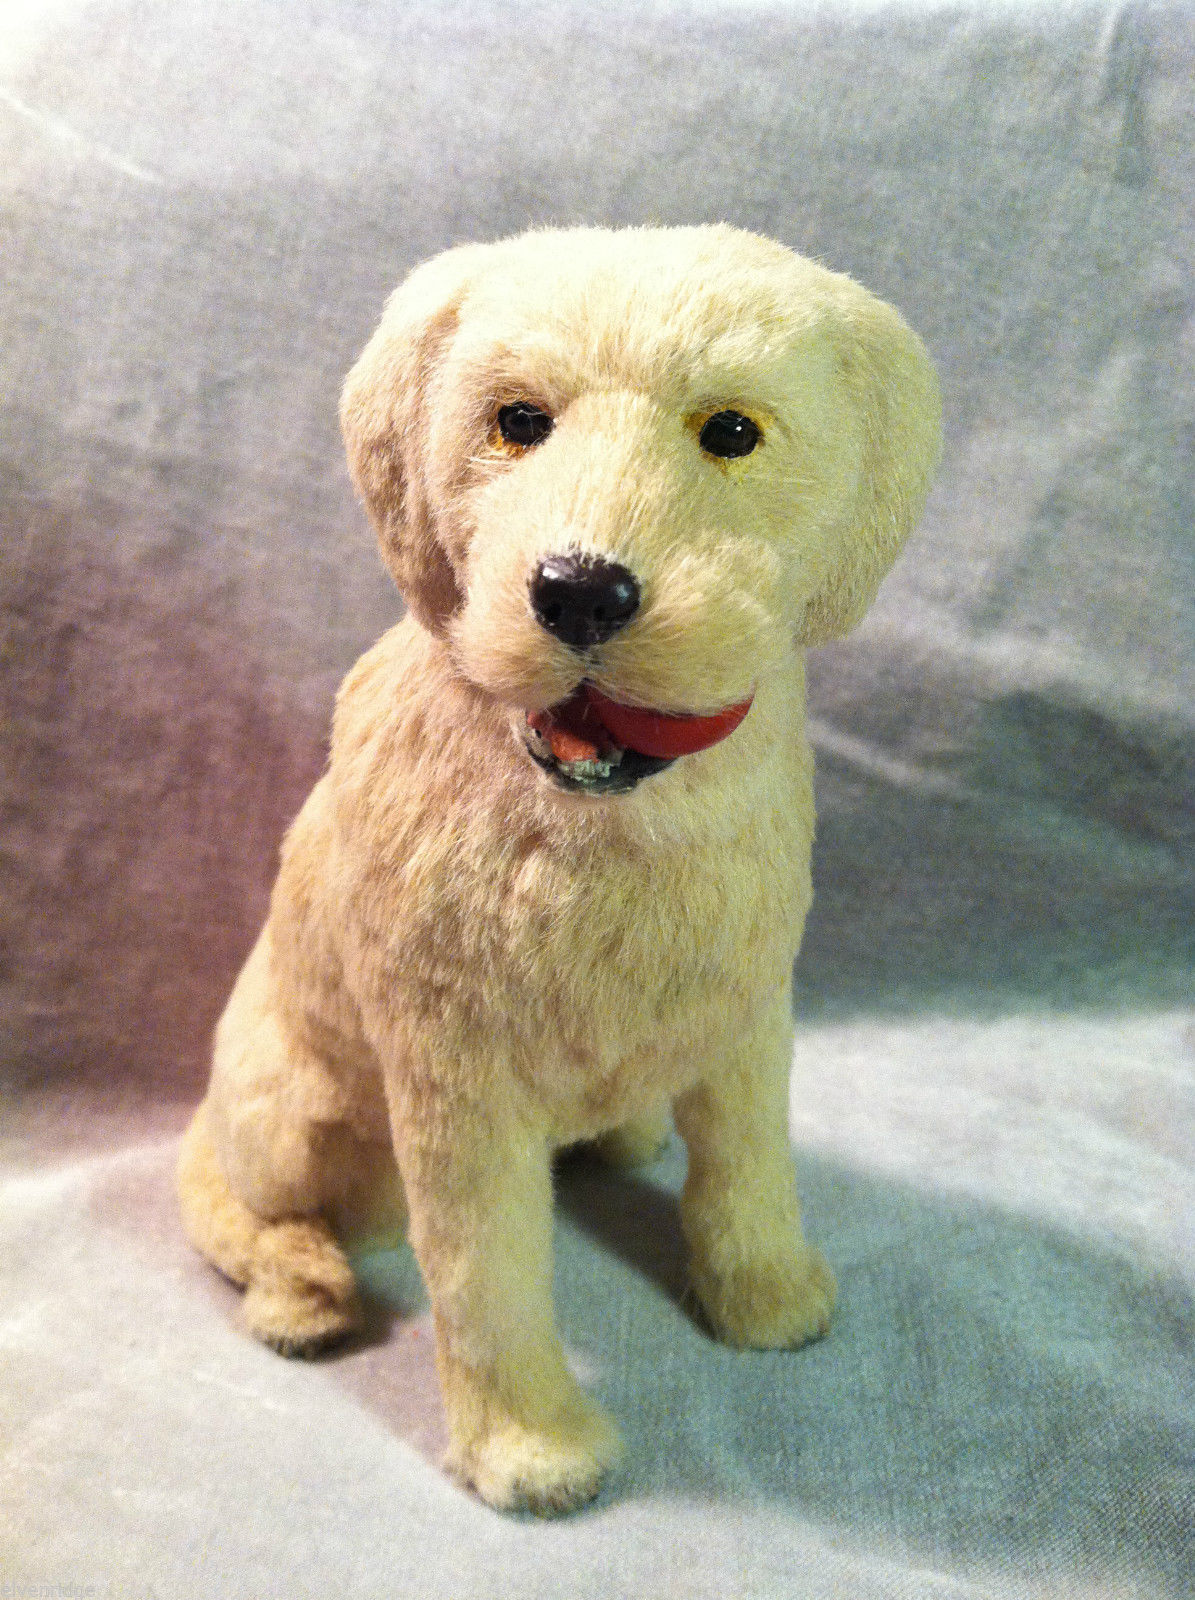 Yellow Labrador Retriever w/ red chew toy - Dog Figurine - recycled rabbit fur